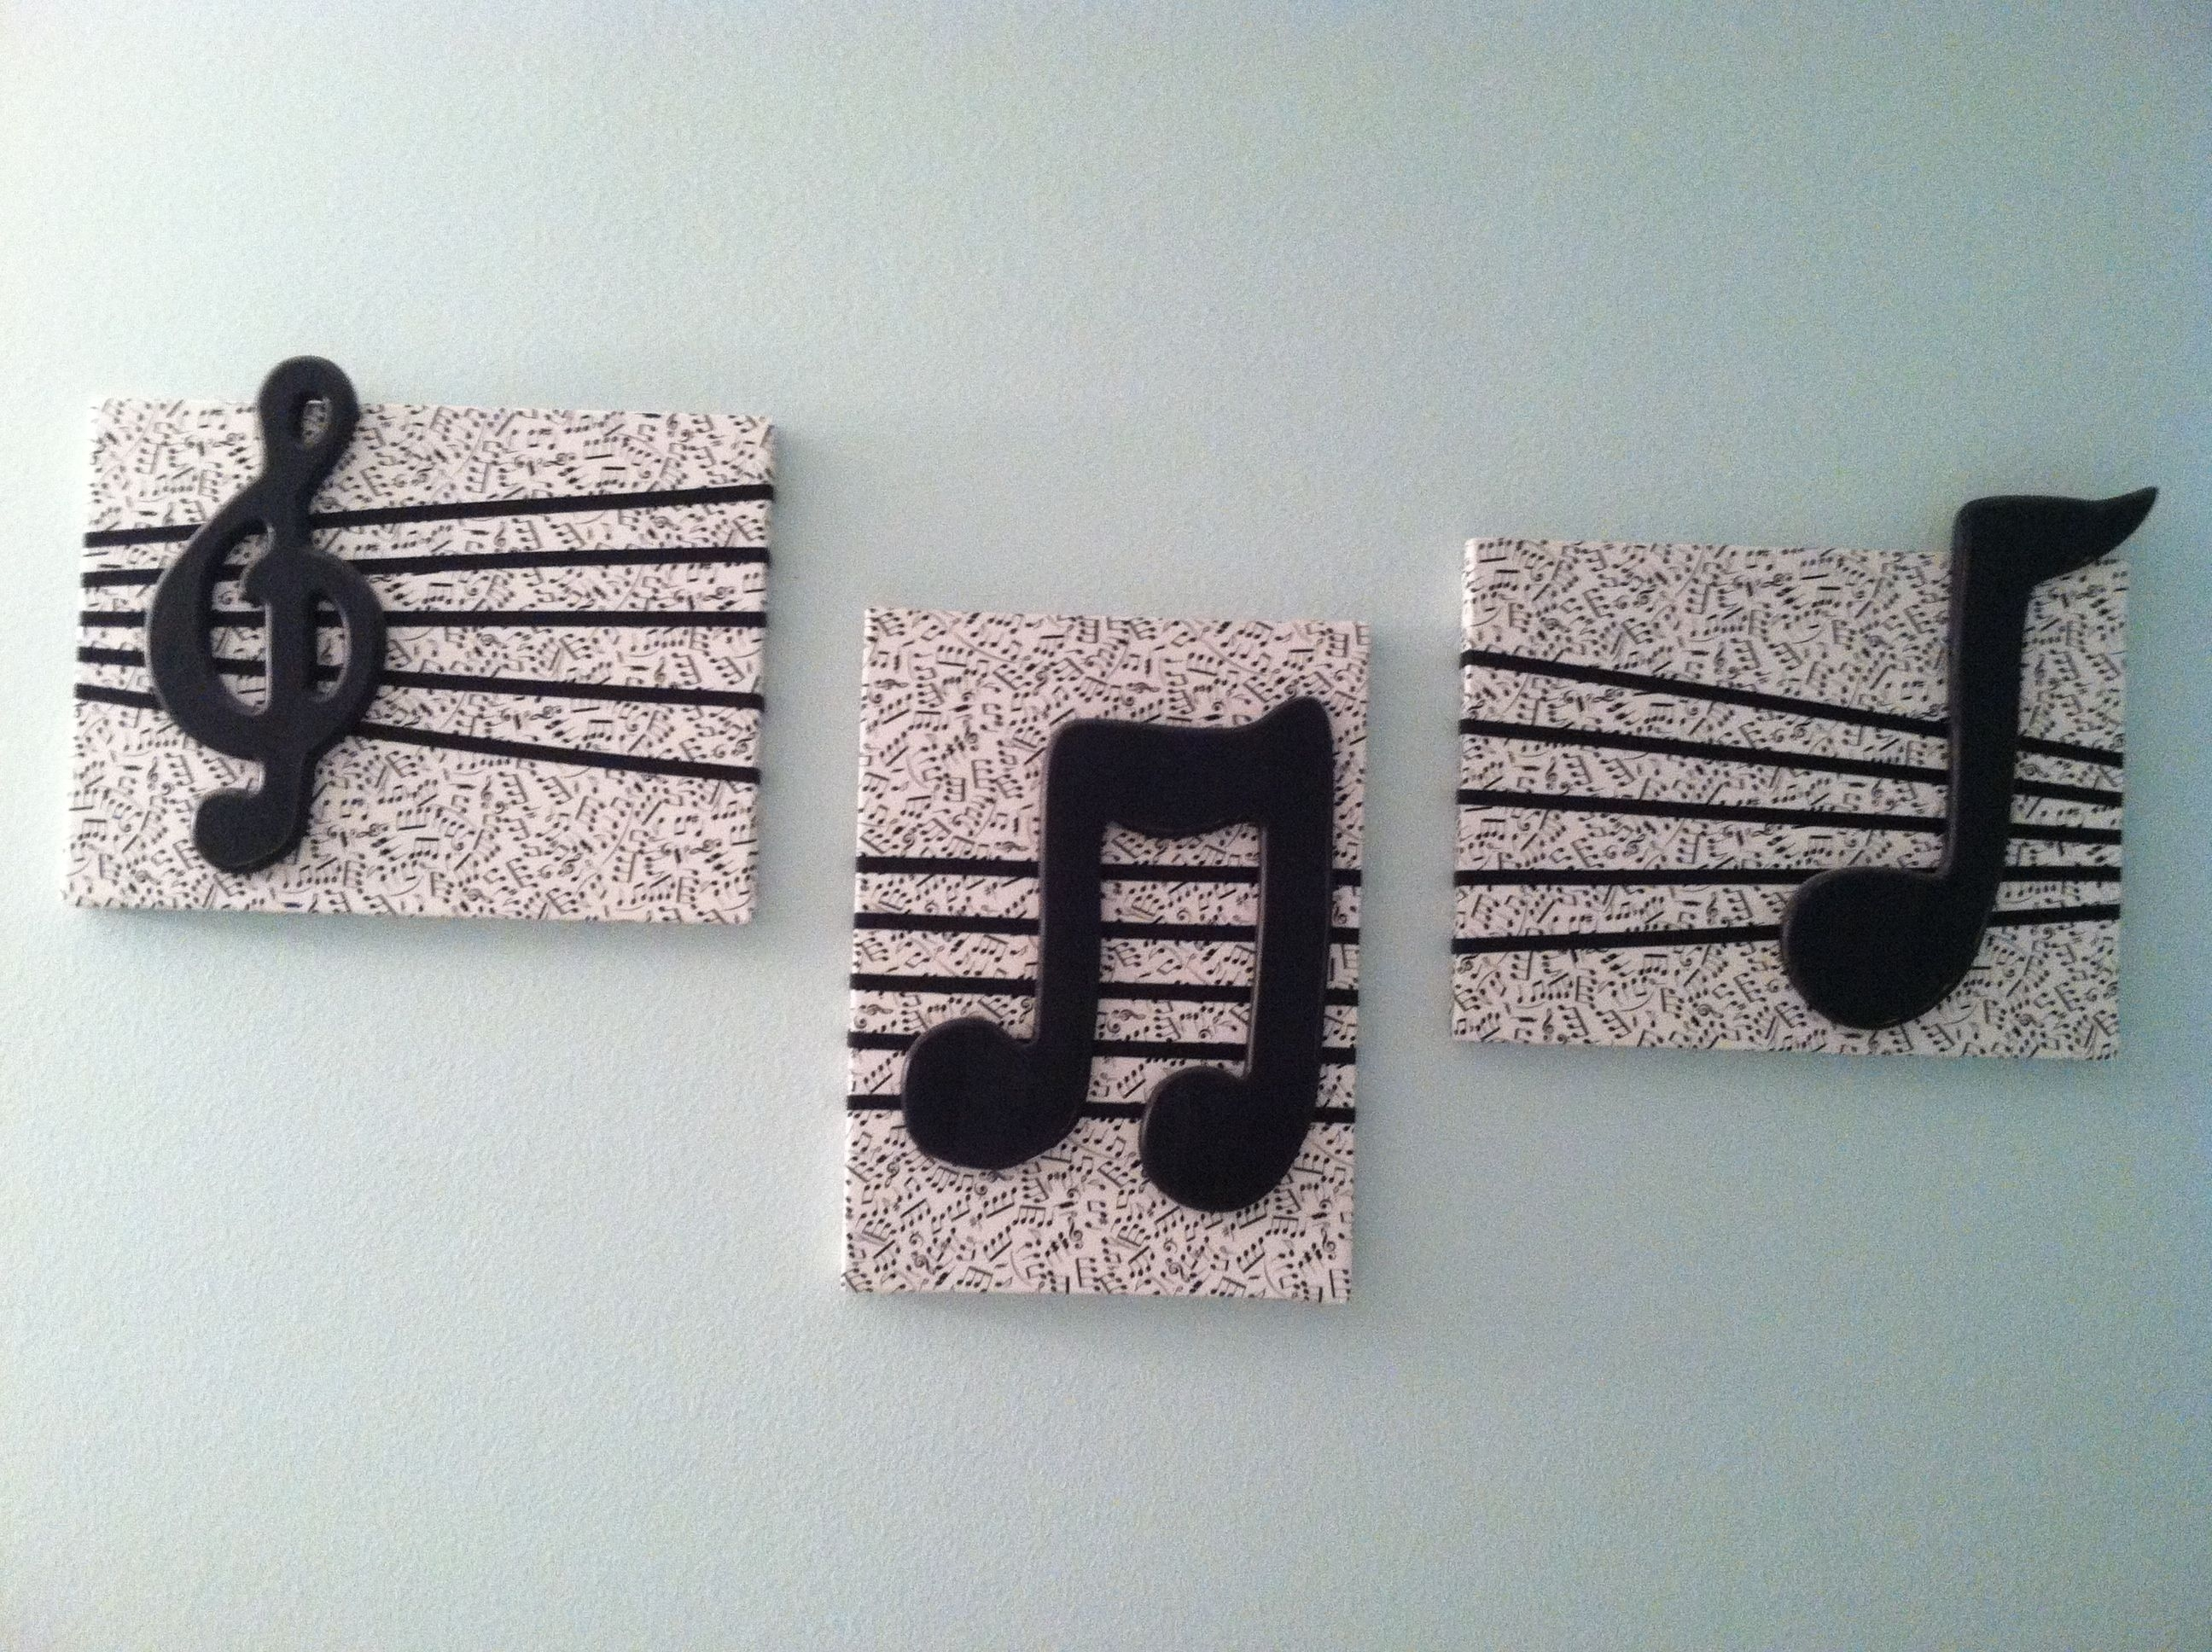 Diy Wall Decor Cover Canvas Squares With Music Note Fabric, Add Within 2018 Music Canvas Wall Art (View 15 of 15)